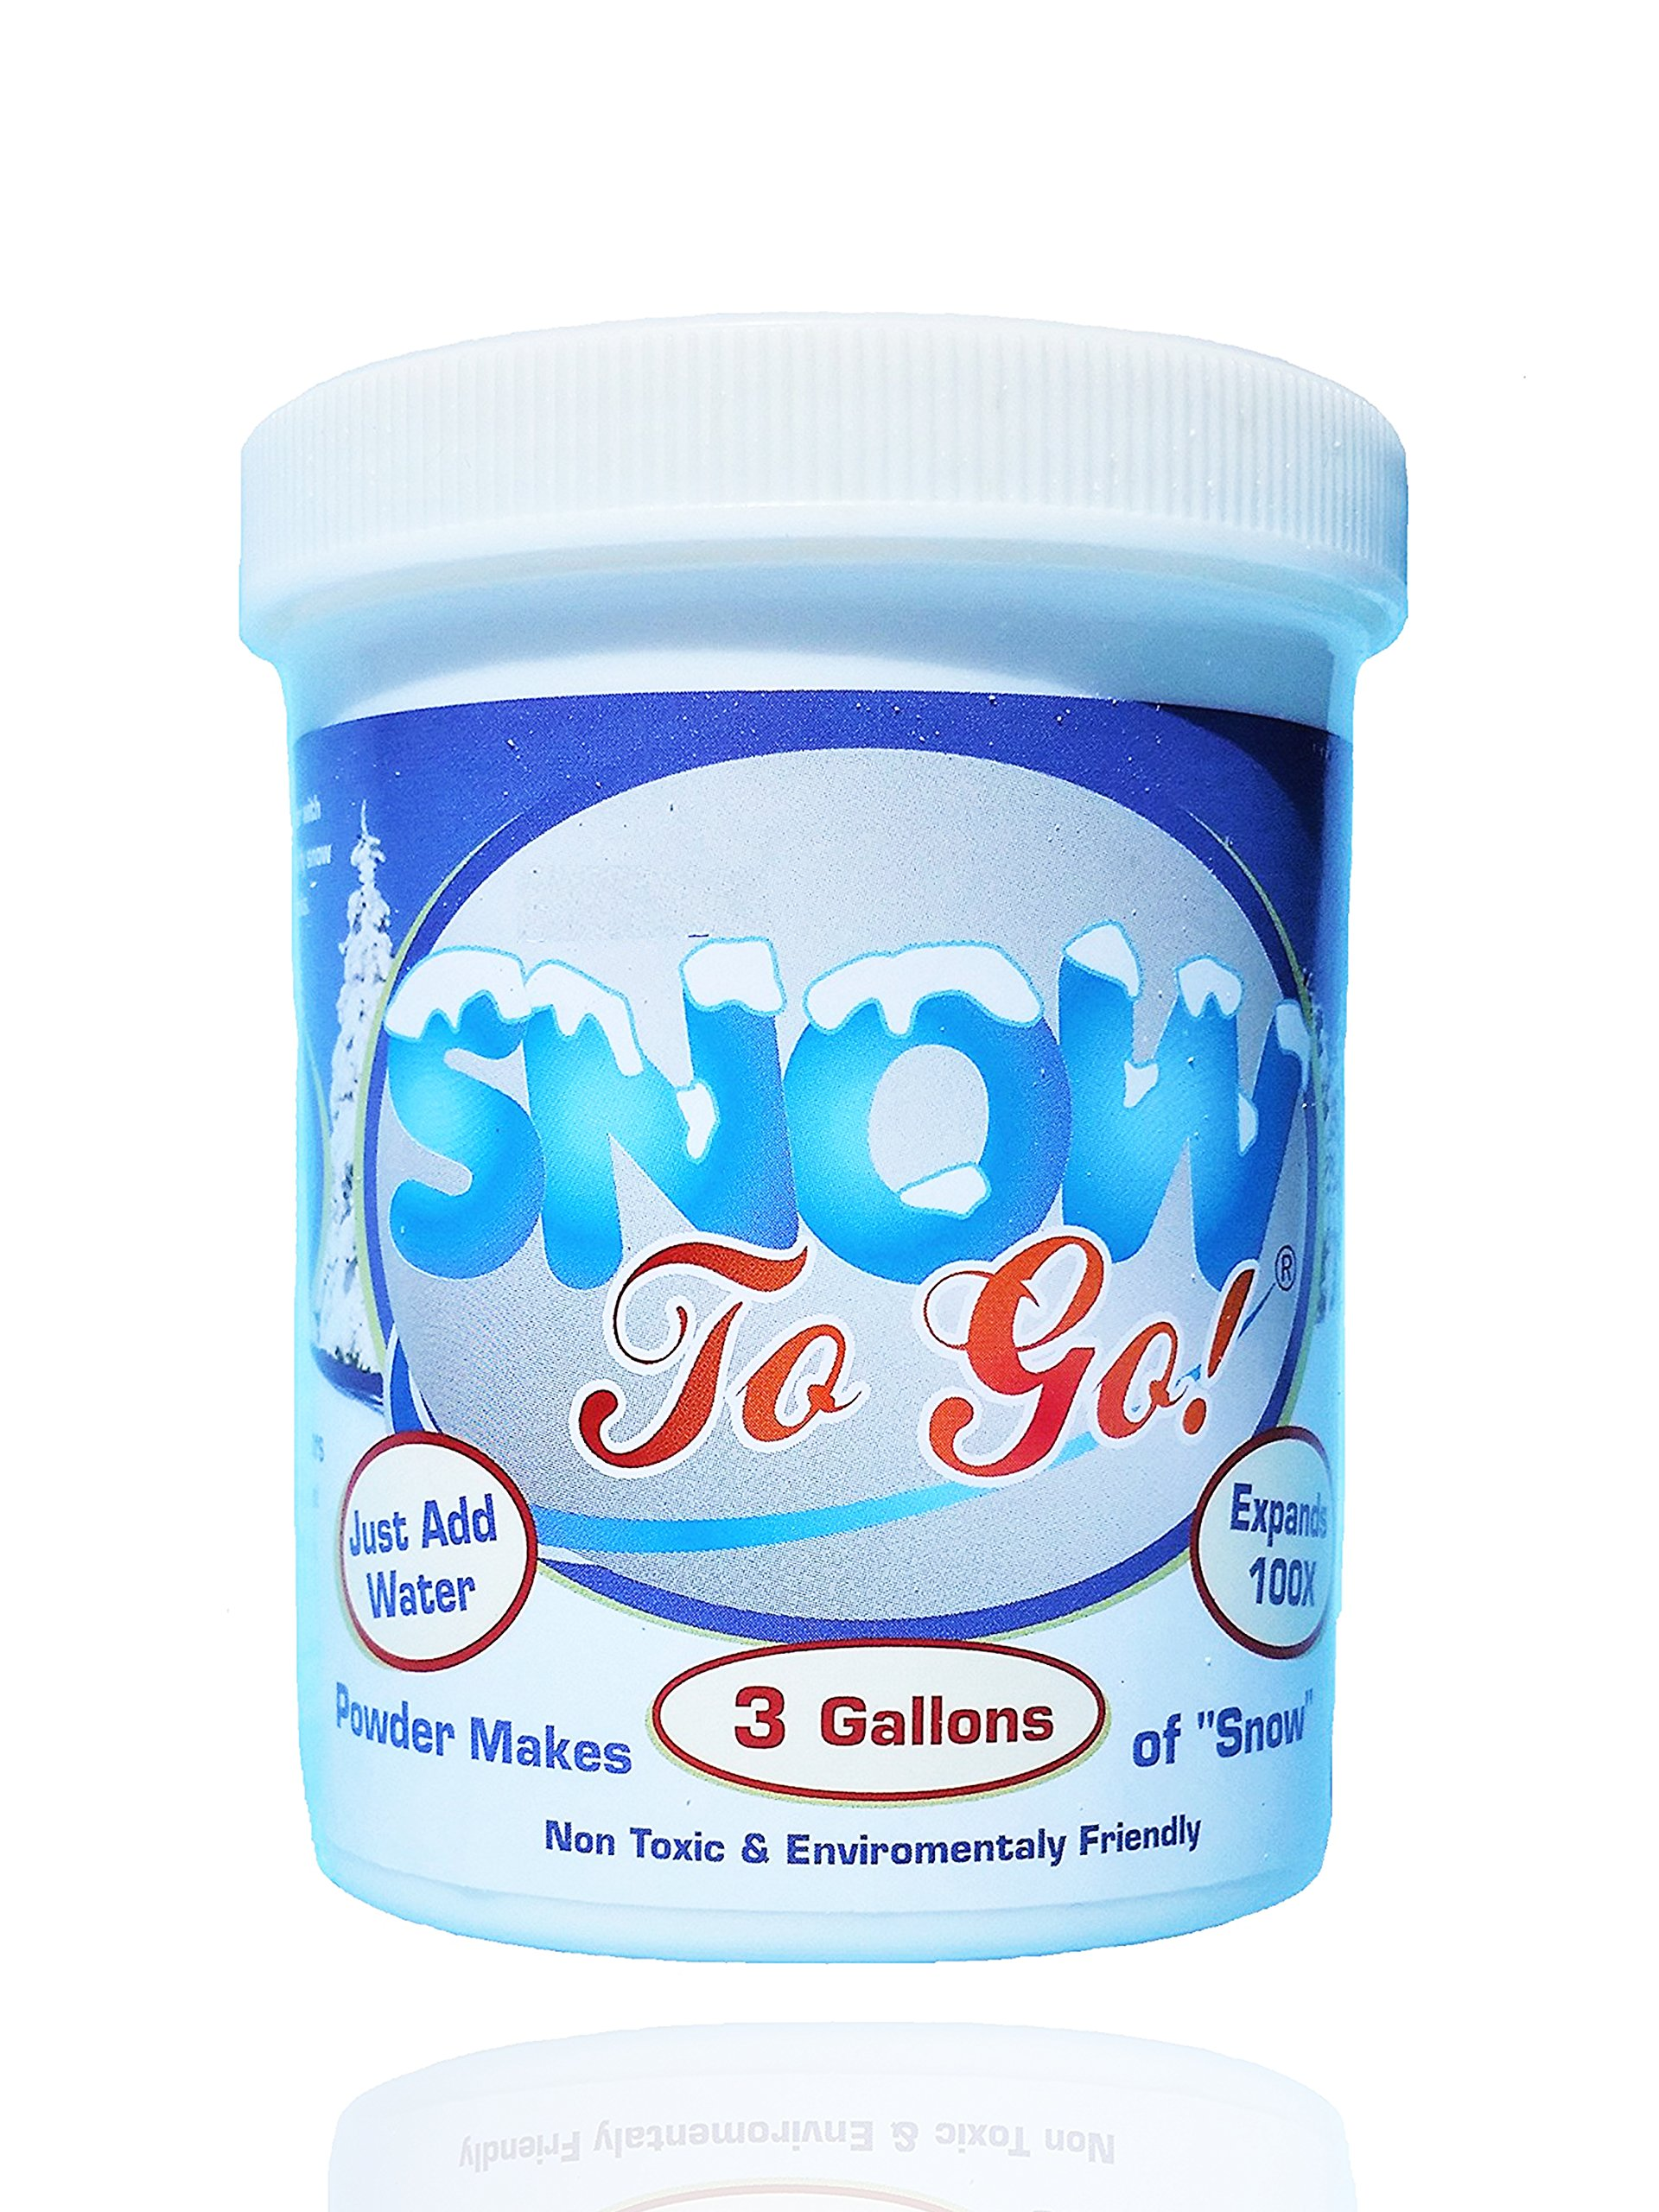 Instant Snow Powder Jar 8 Oz - Makes 3 Gallon Of Snow - Great For Decorating And Fun – Non Toxic & Environmental Friendly (Scoop and instructions included) by Fun Flow